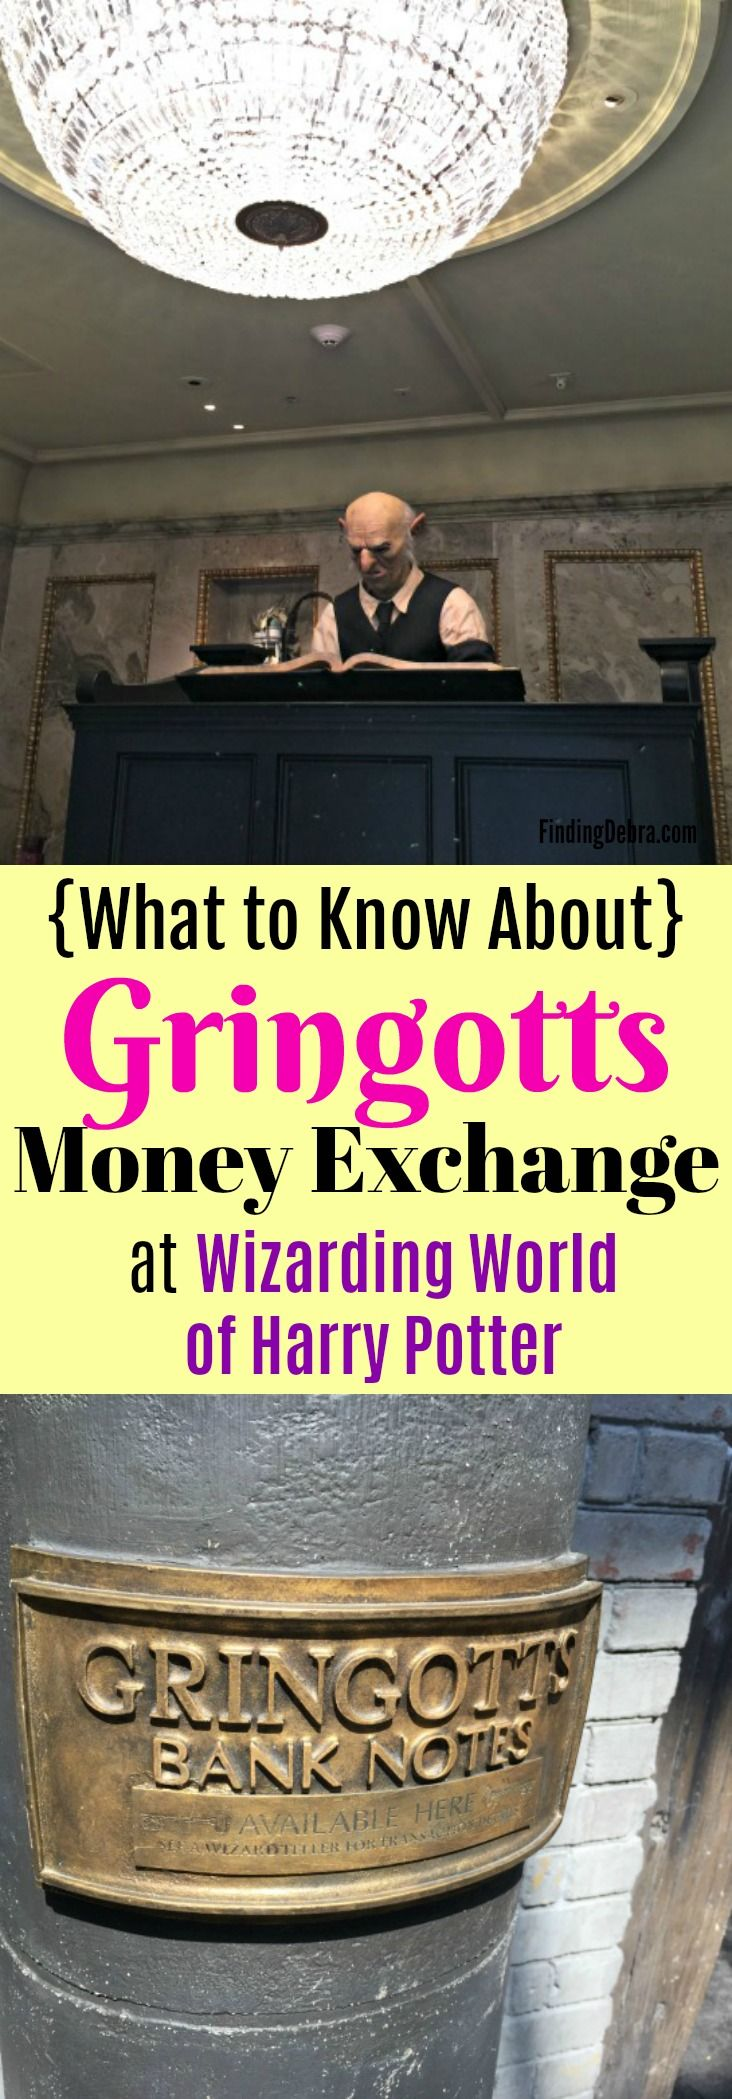 Gringotts Money Exchange -  - what to know about this unique experience at Universal Studios Orlando in the Wizarding World of Harry Potter (Diagon Alley) #UniversalPartner #harrypotter #UniversalStudios #TheWizardingWorldofHarryPotter #FamilyTravel